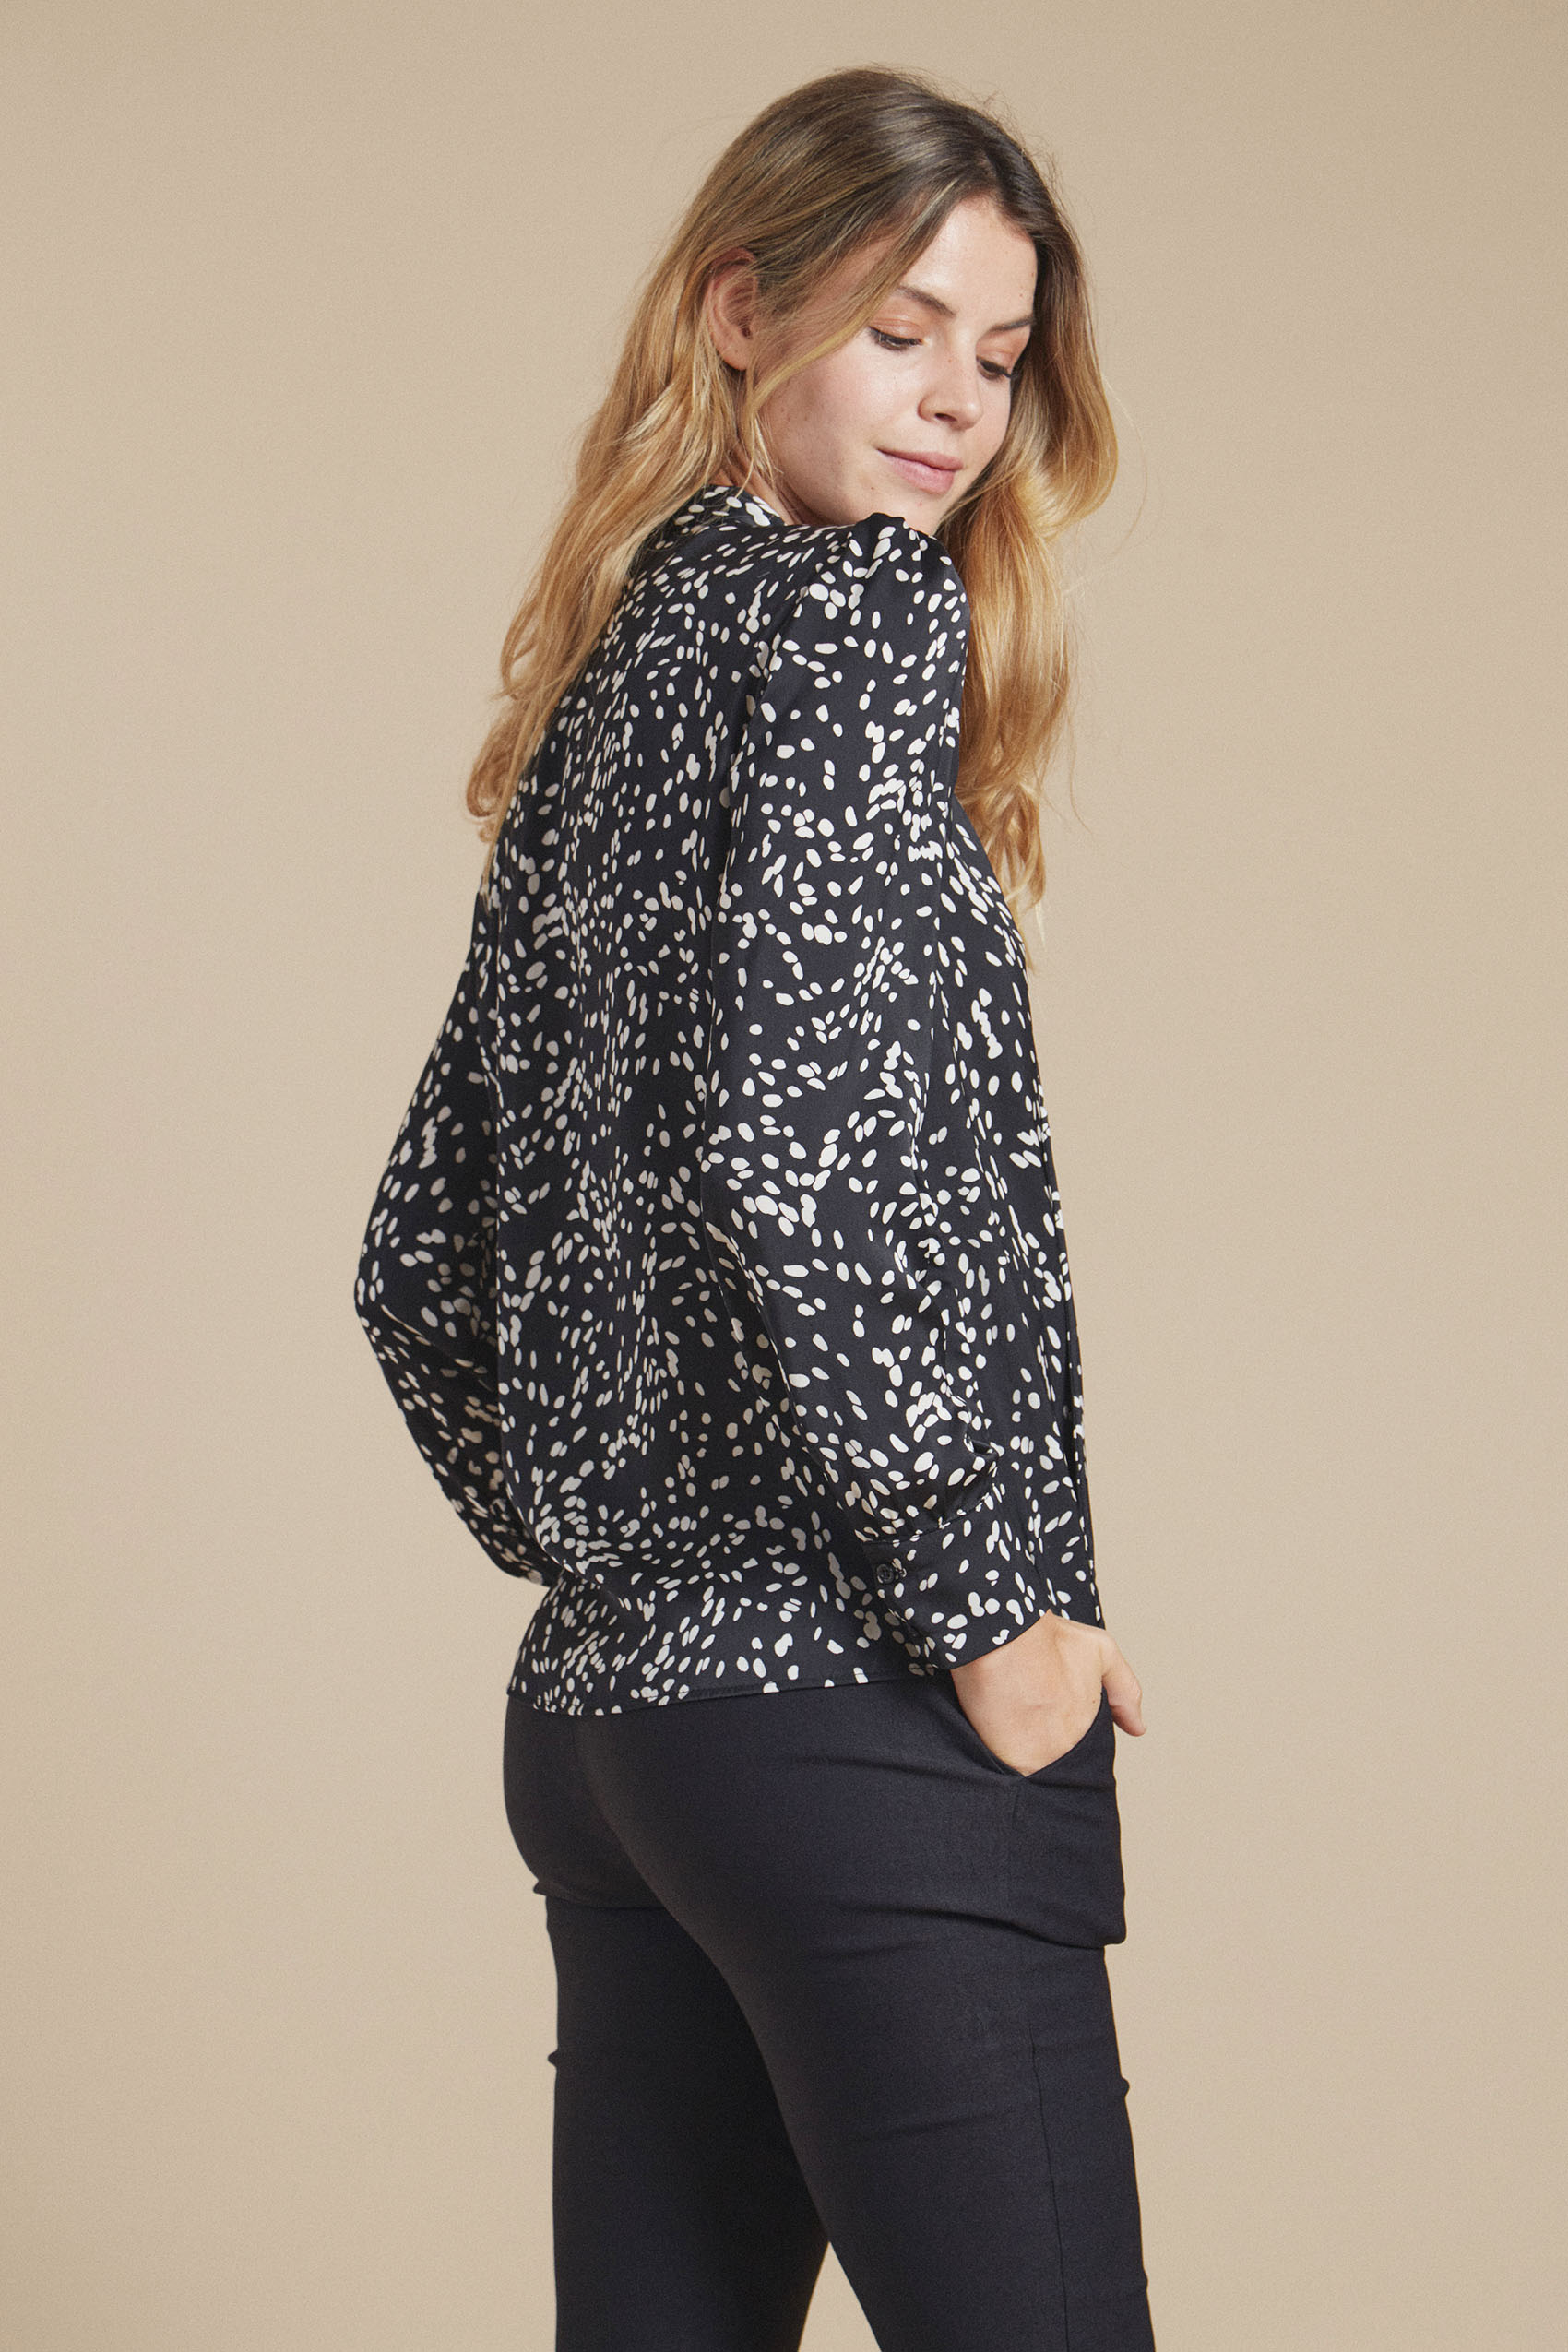 awada_camisa-amy_41-13-2021__picture-21054